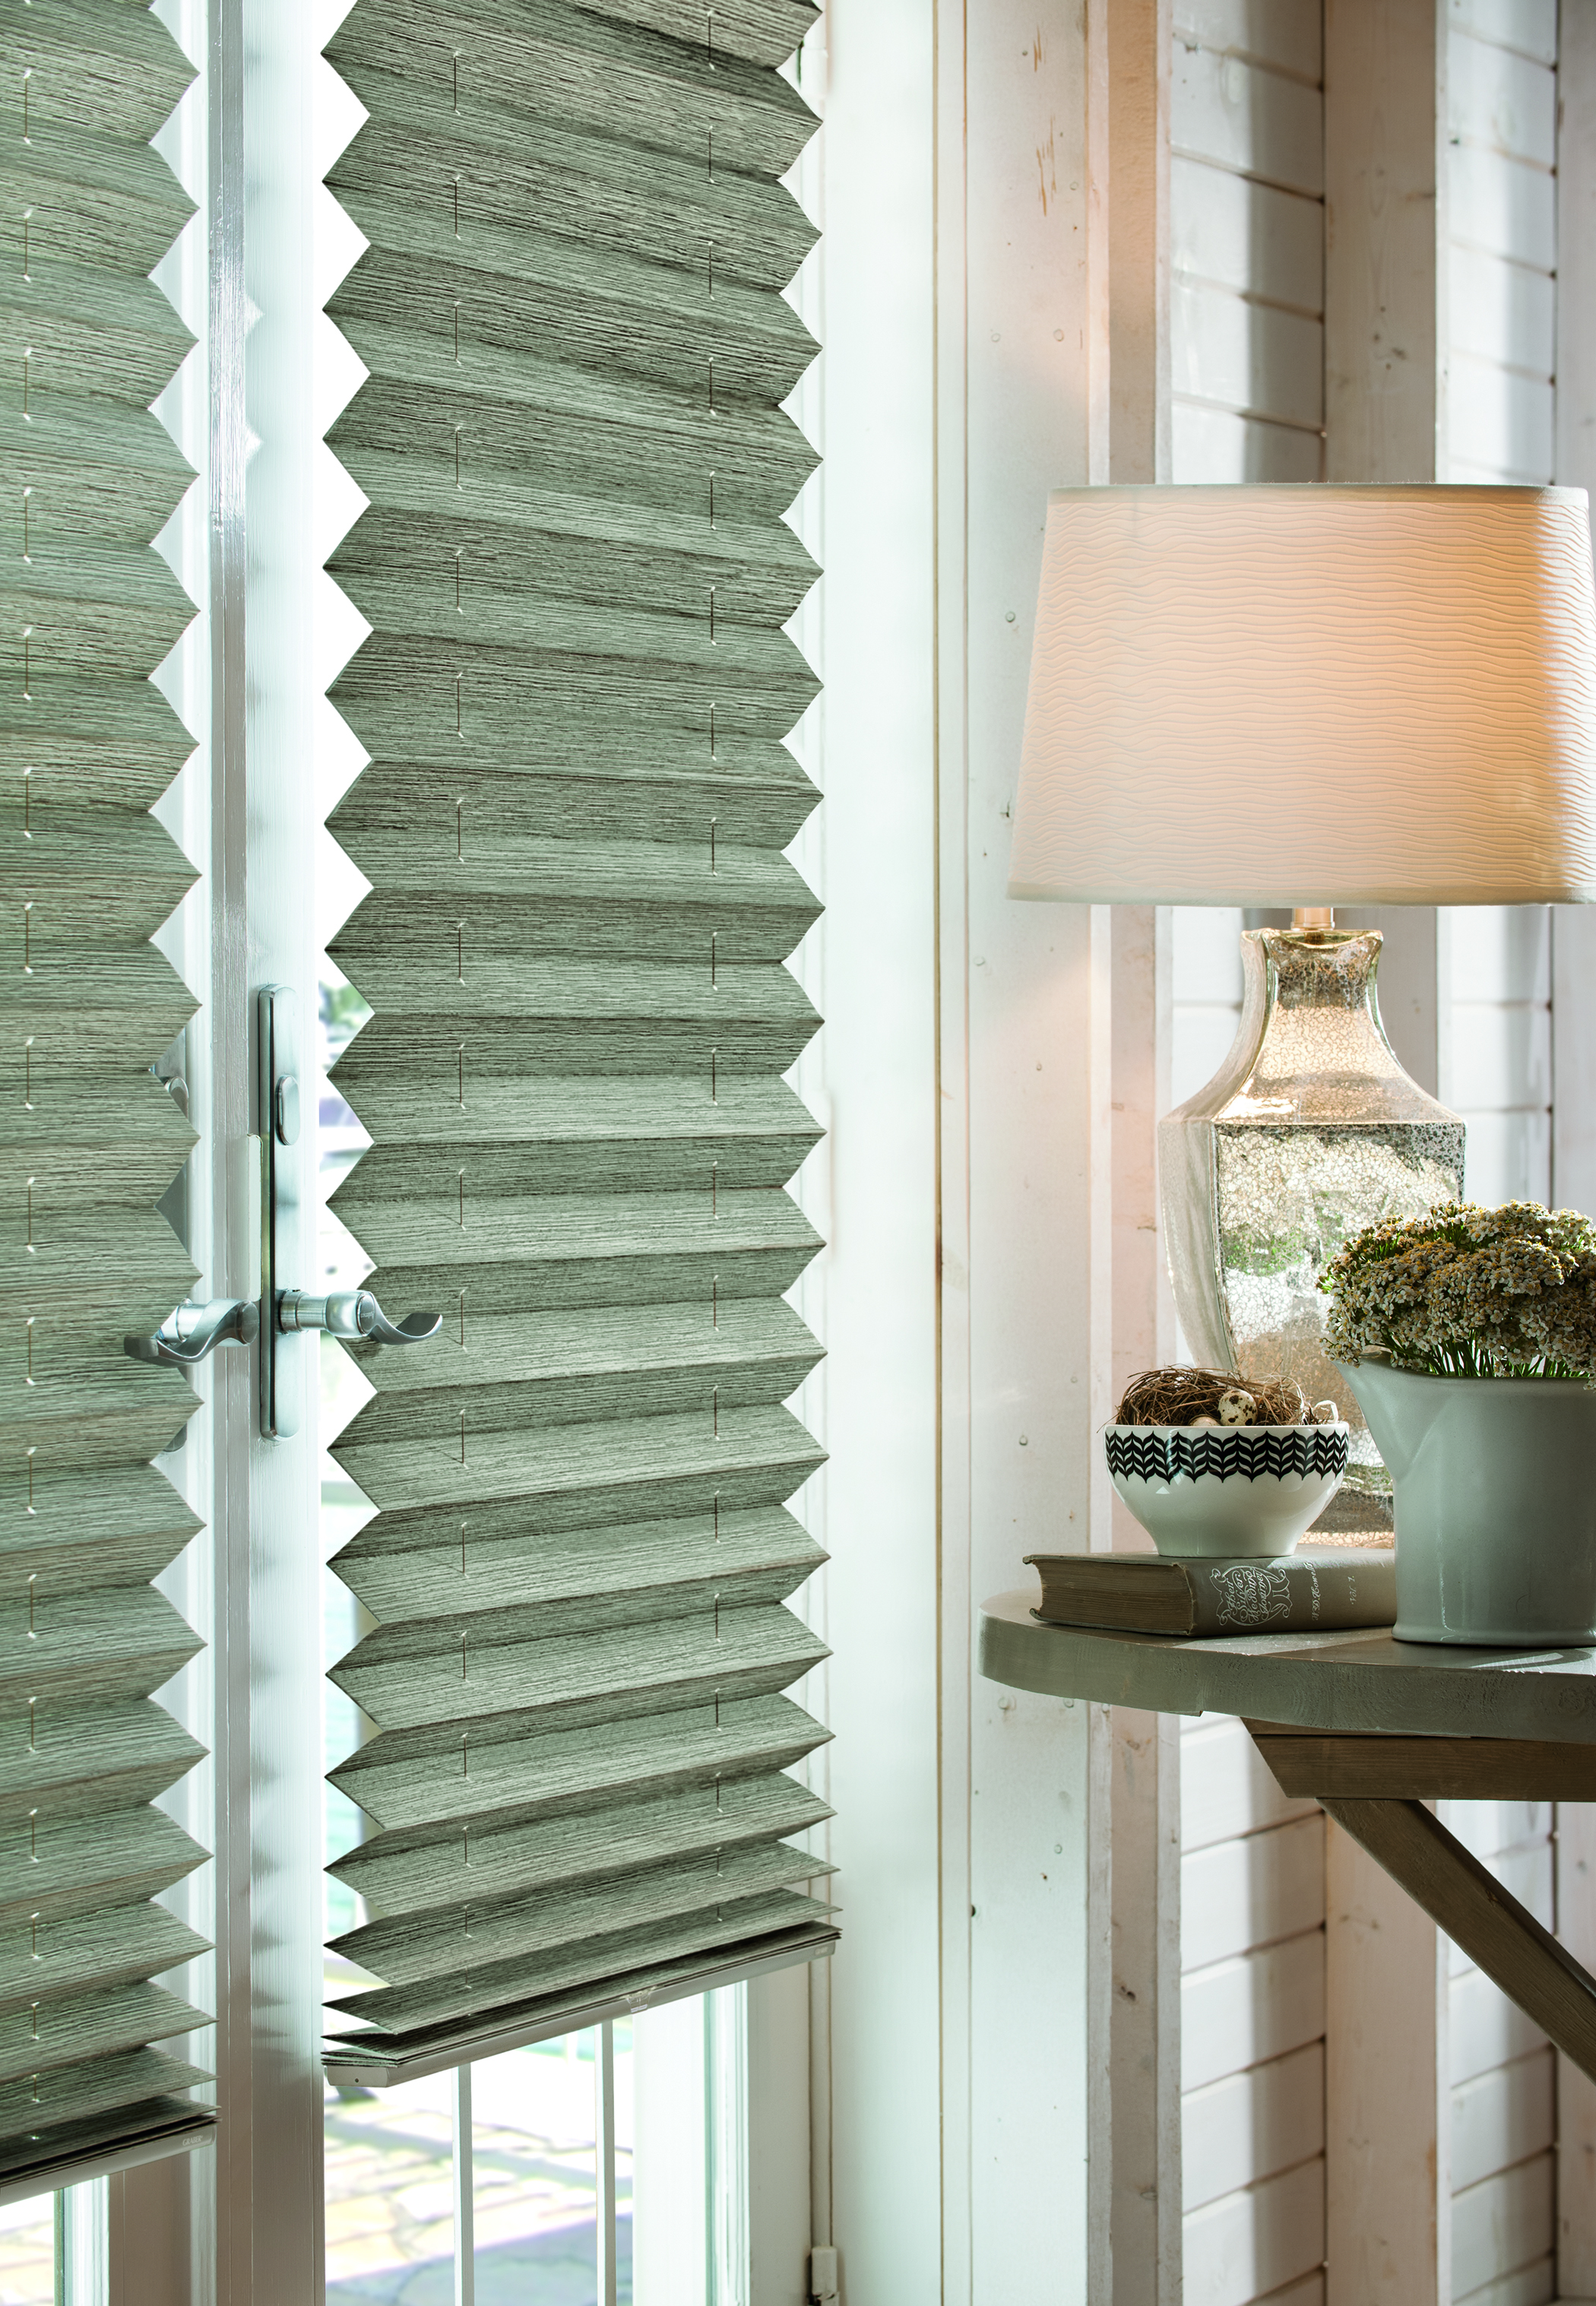 custom shades - pleated shades